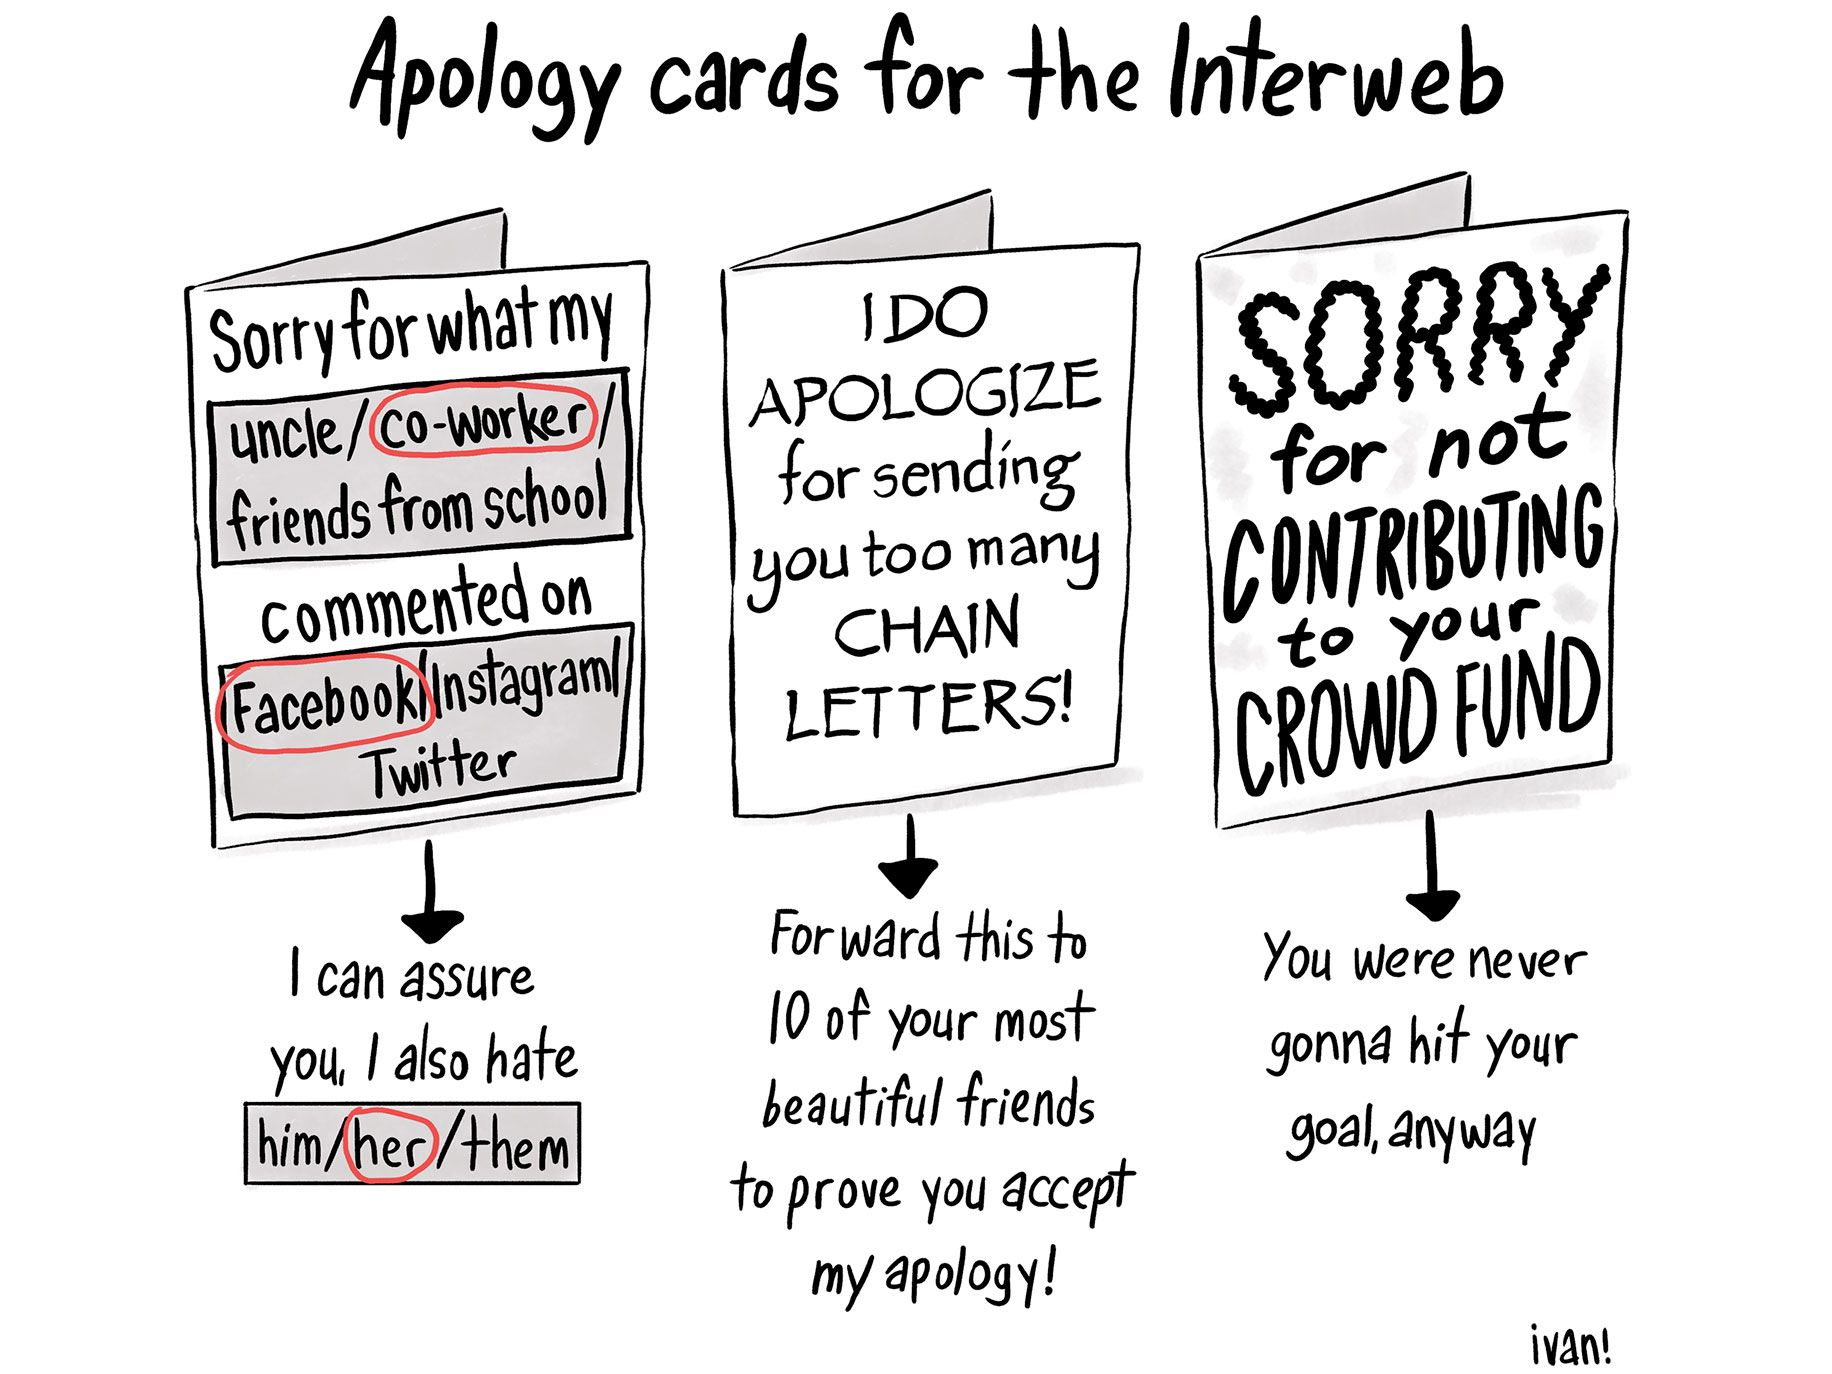 Apology cards for the interweb